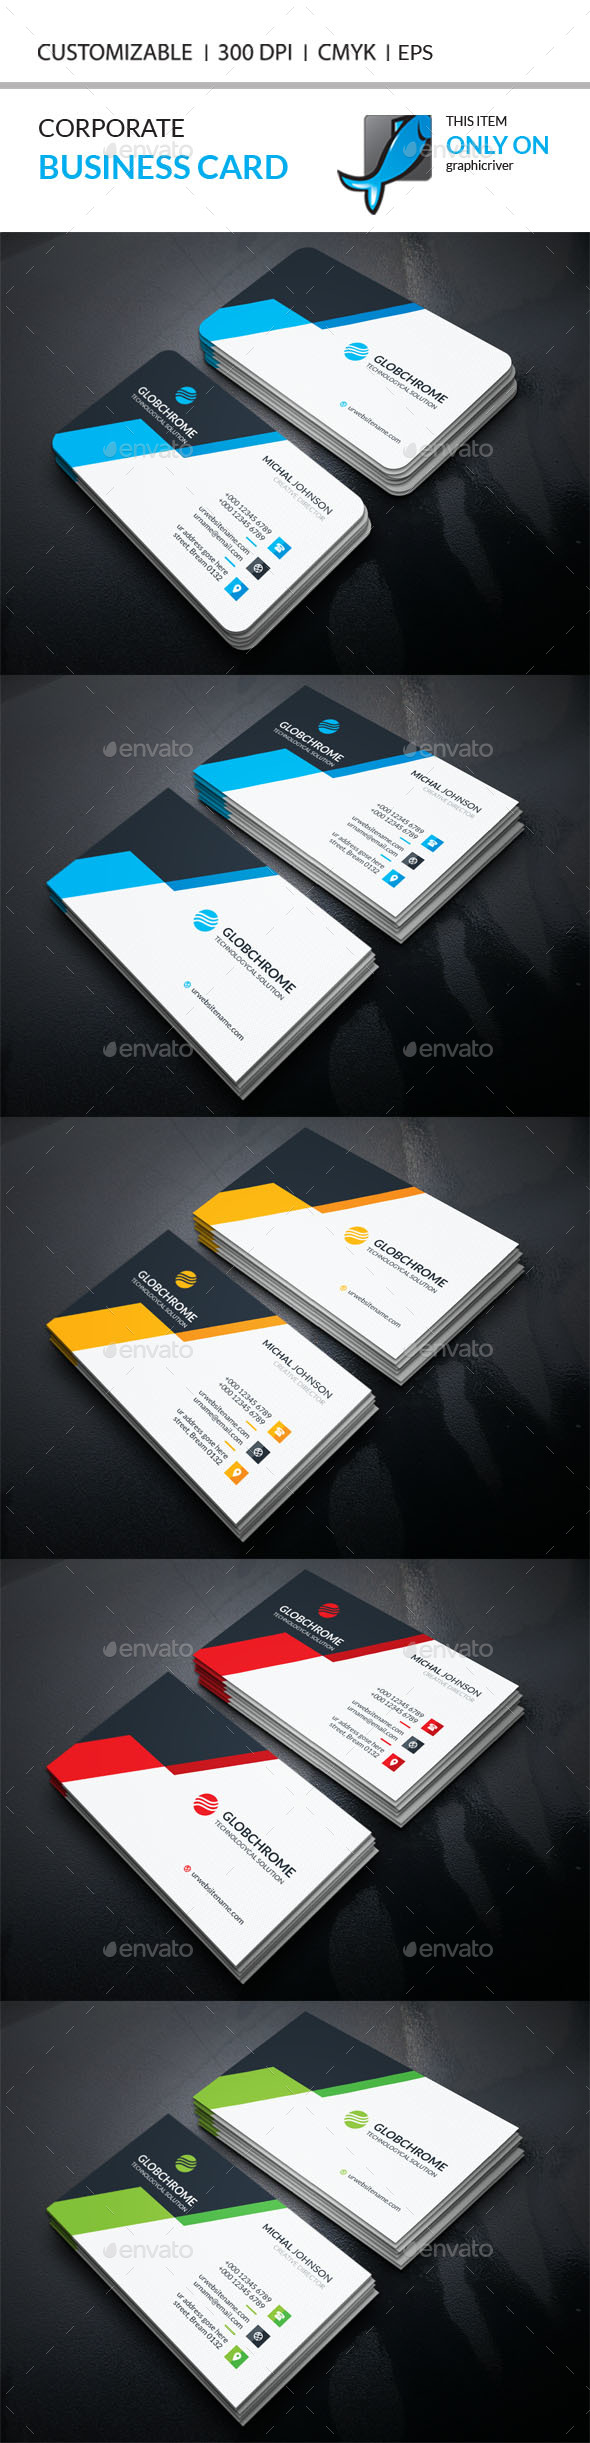 Corporate business card template vector eps ai illustrator corporate business card template vector eps ai illustrator download here http reheart Images